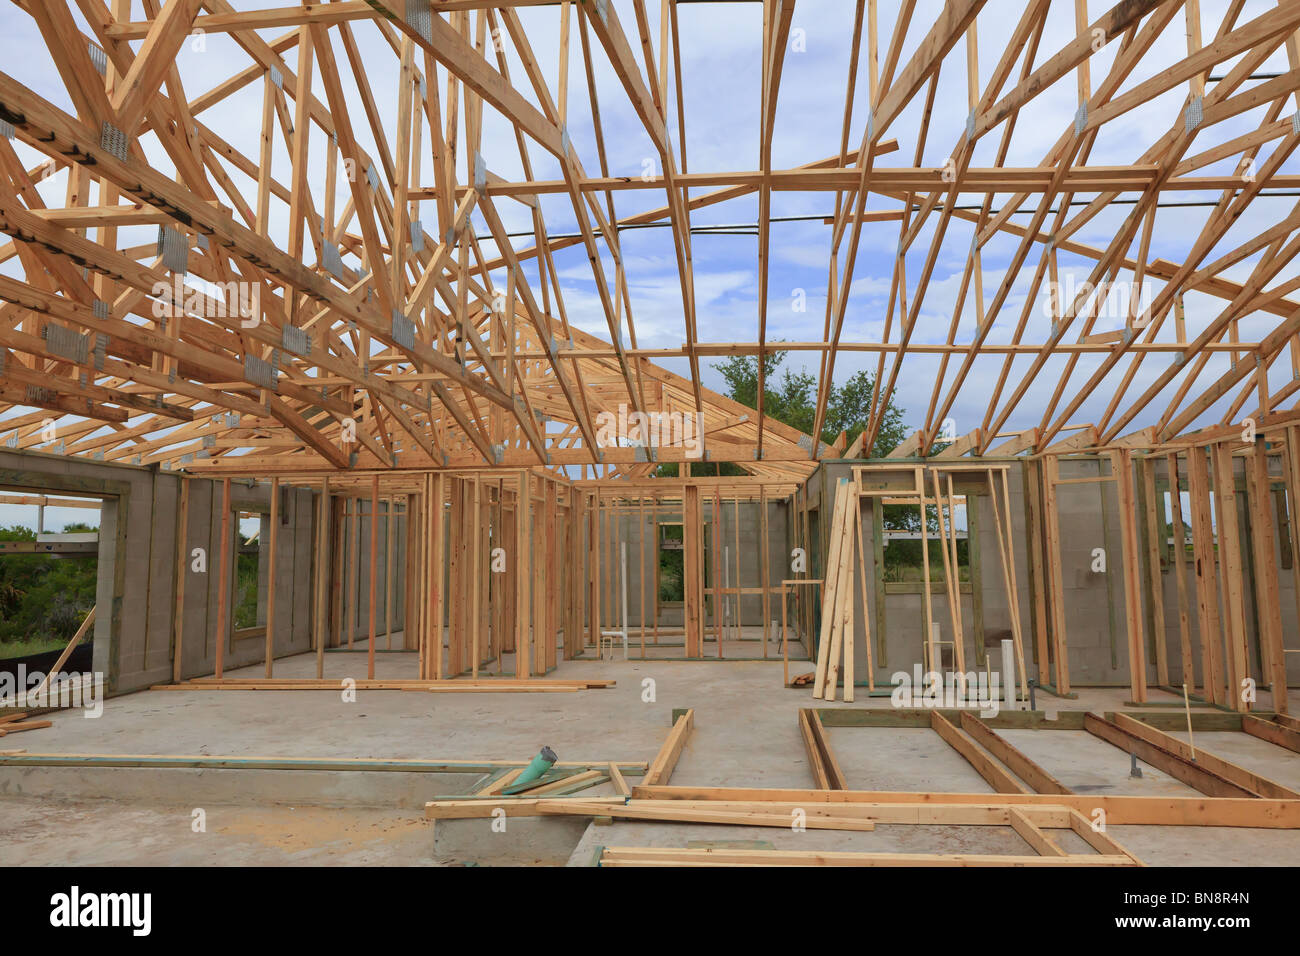 Block Home With Wood Roof Trusses On Under Construction